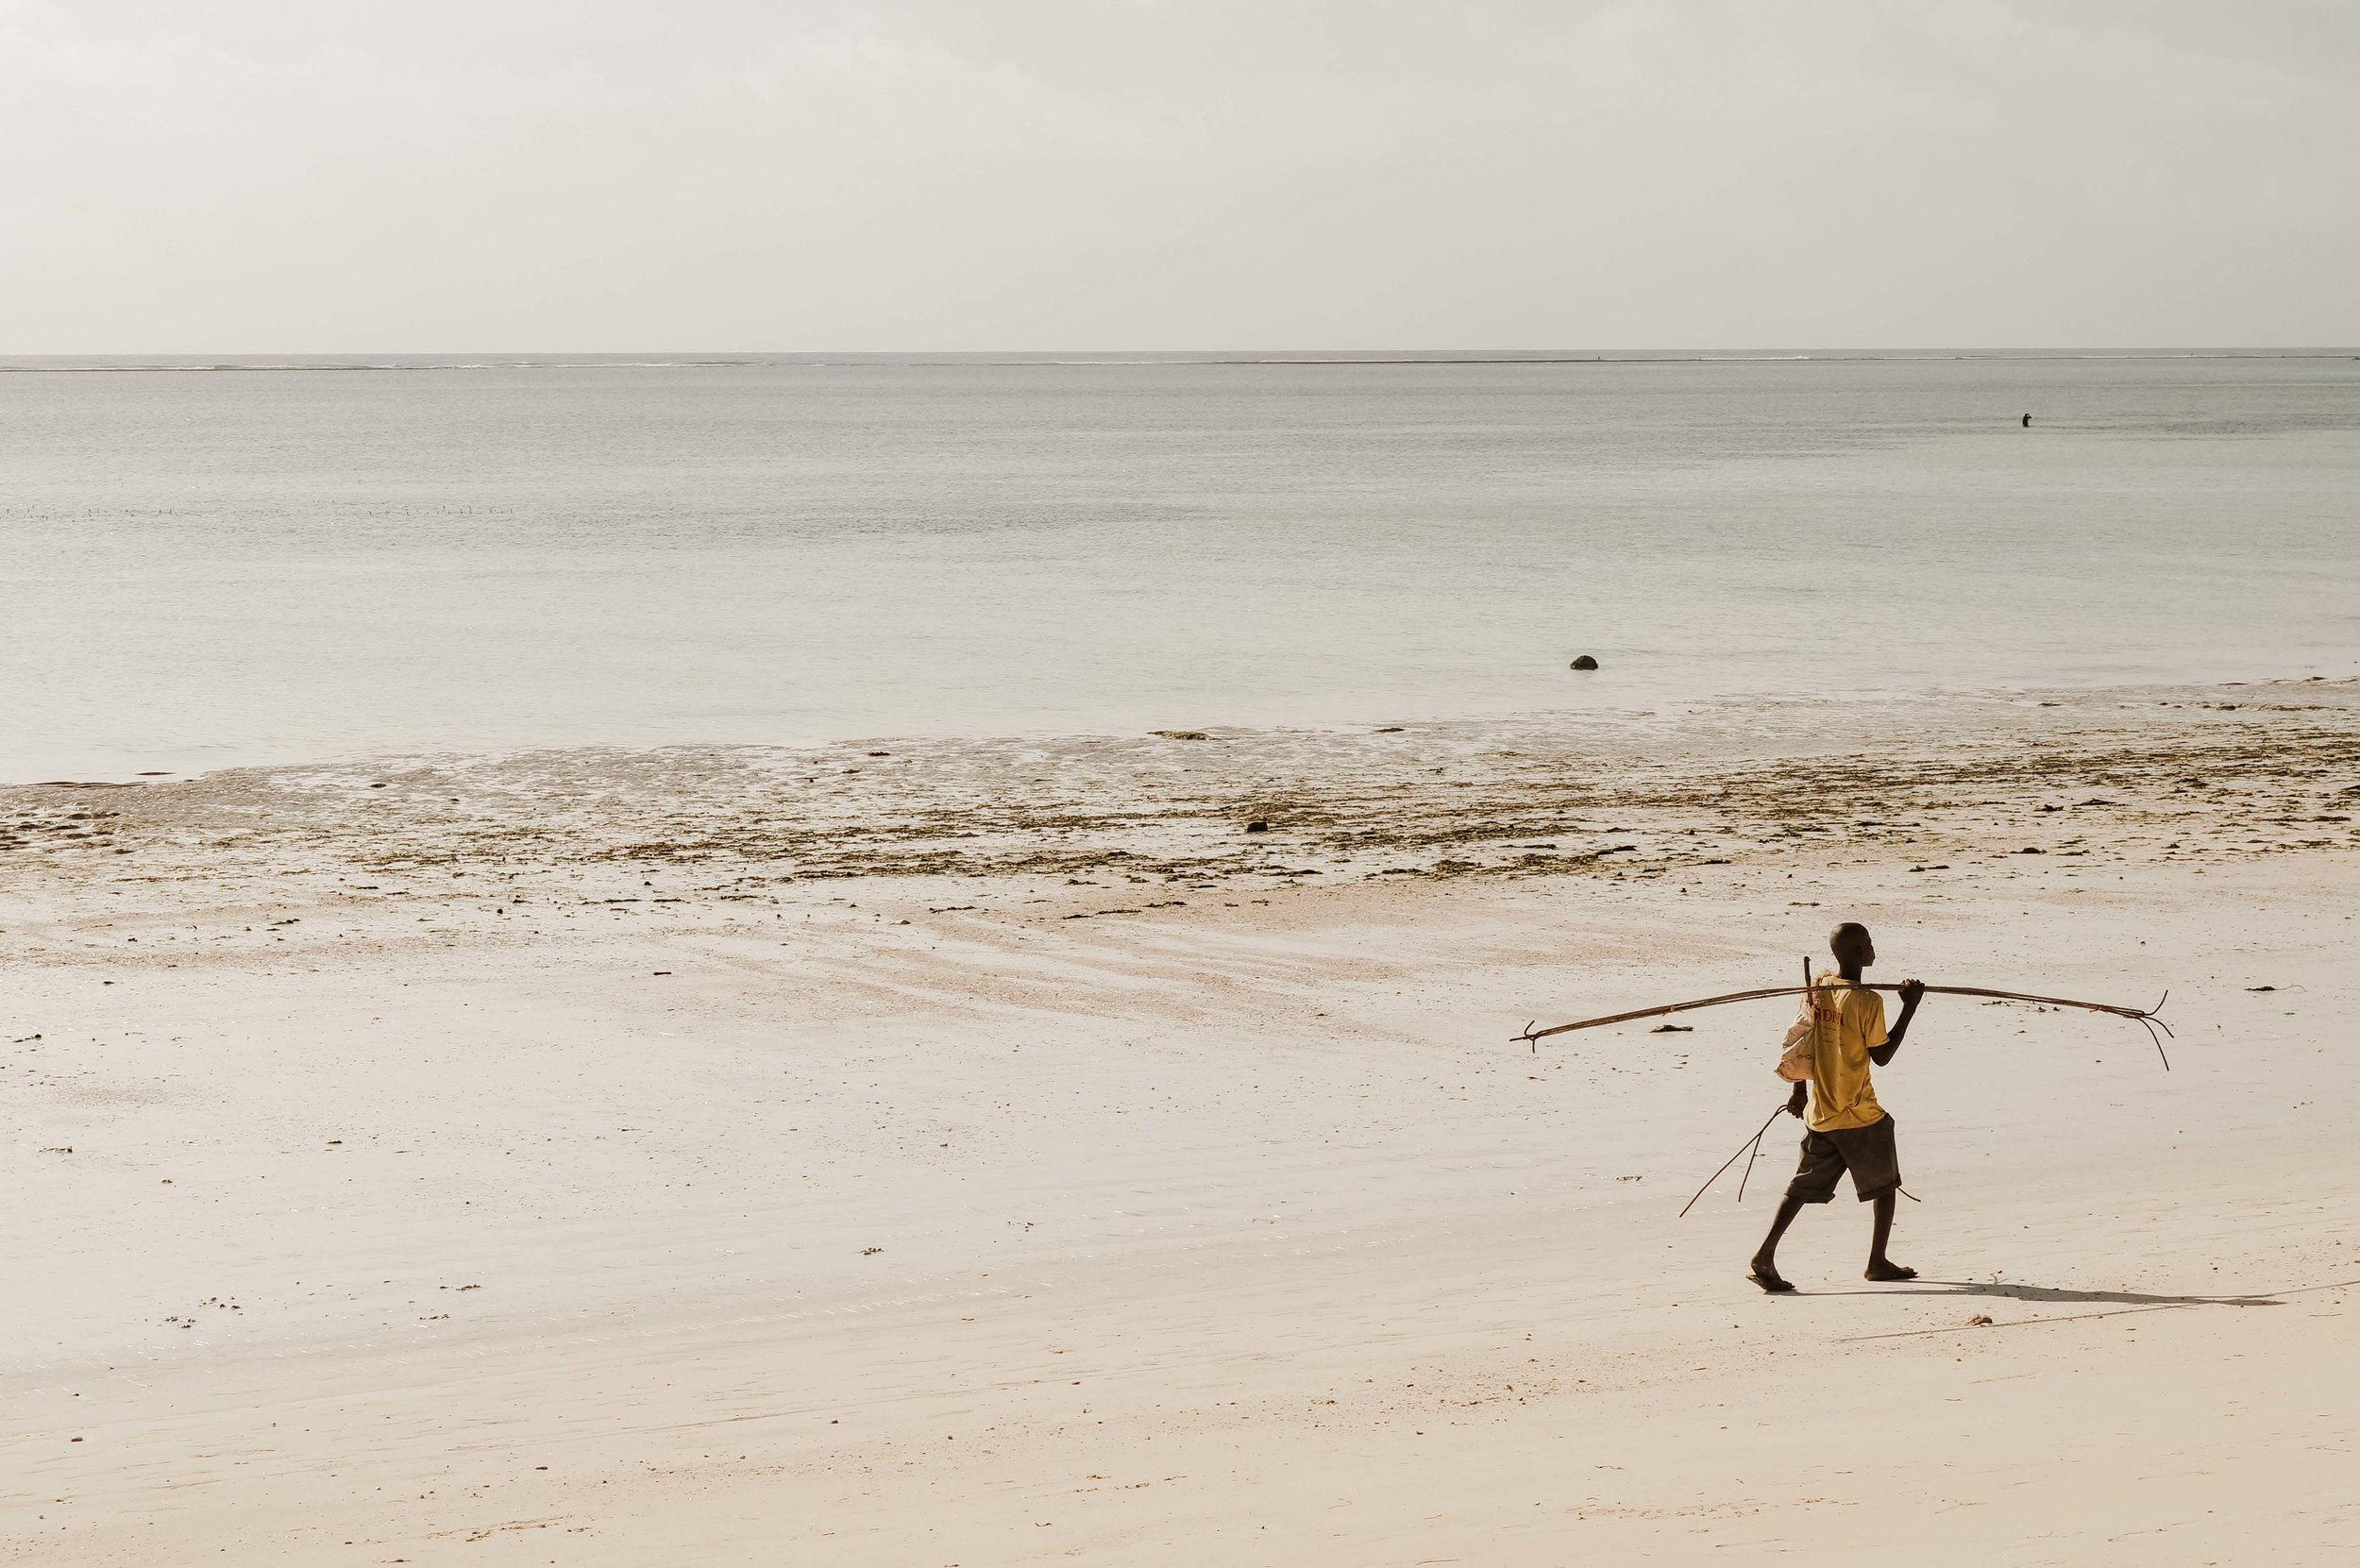 A spear fisherman packs up for the day and heads home along the beach with his catch